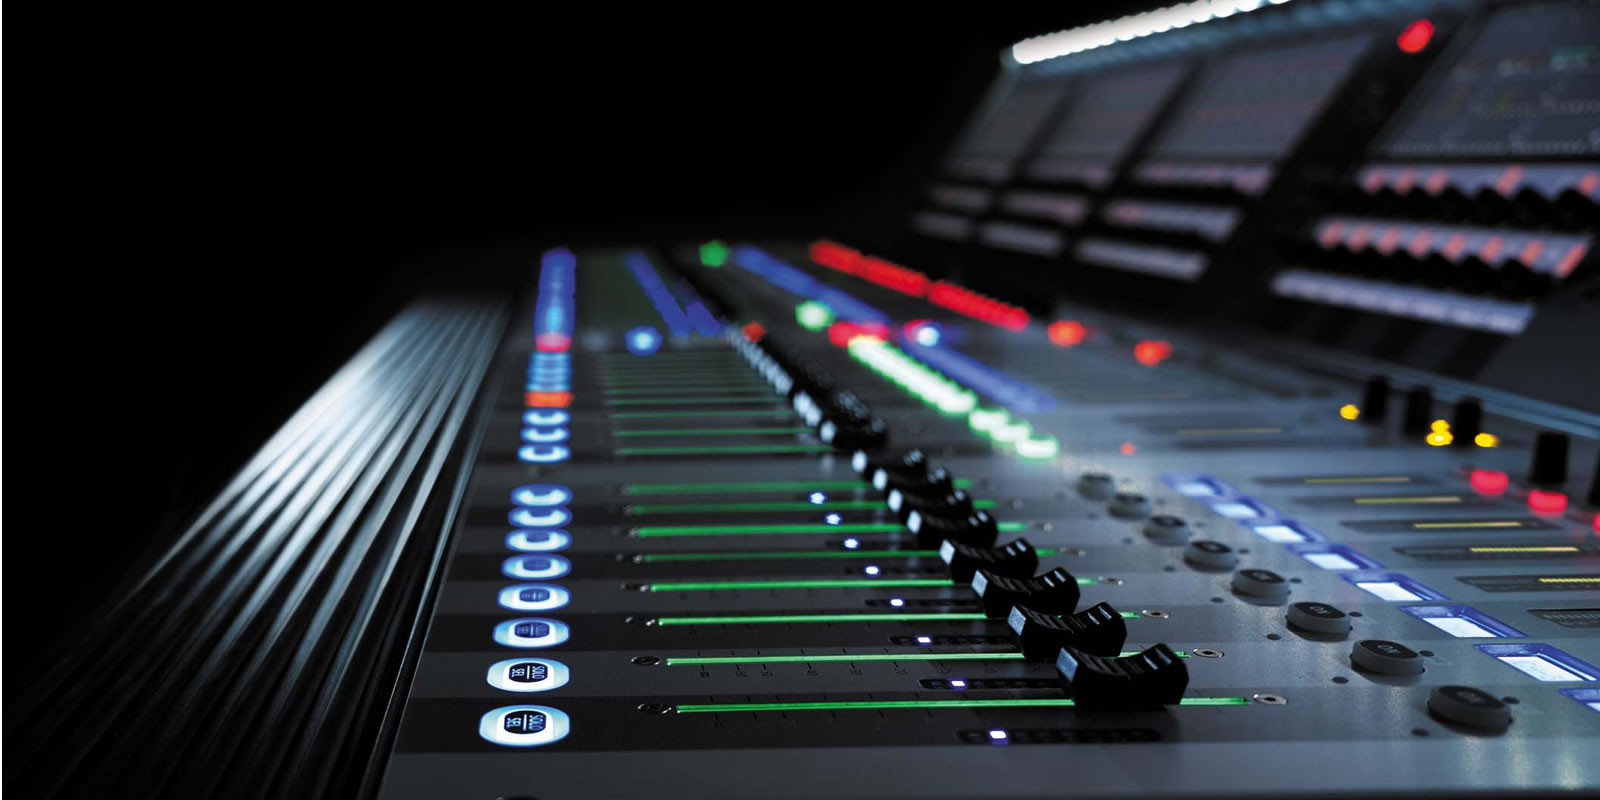 The Tiny House Company Vi6 Soundcraft Professional Audio Mixers